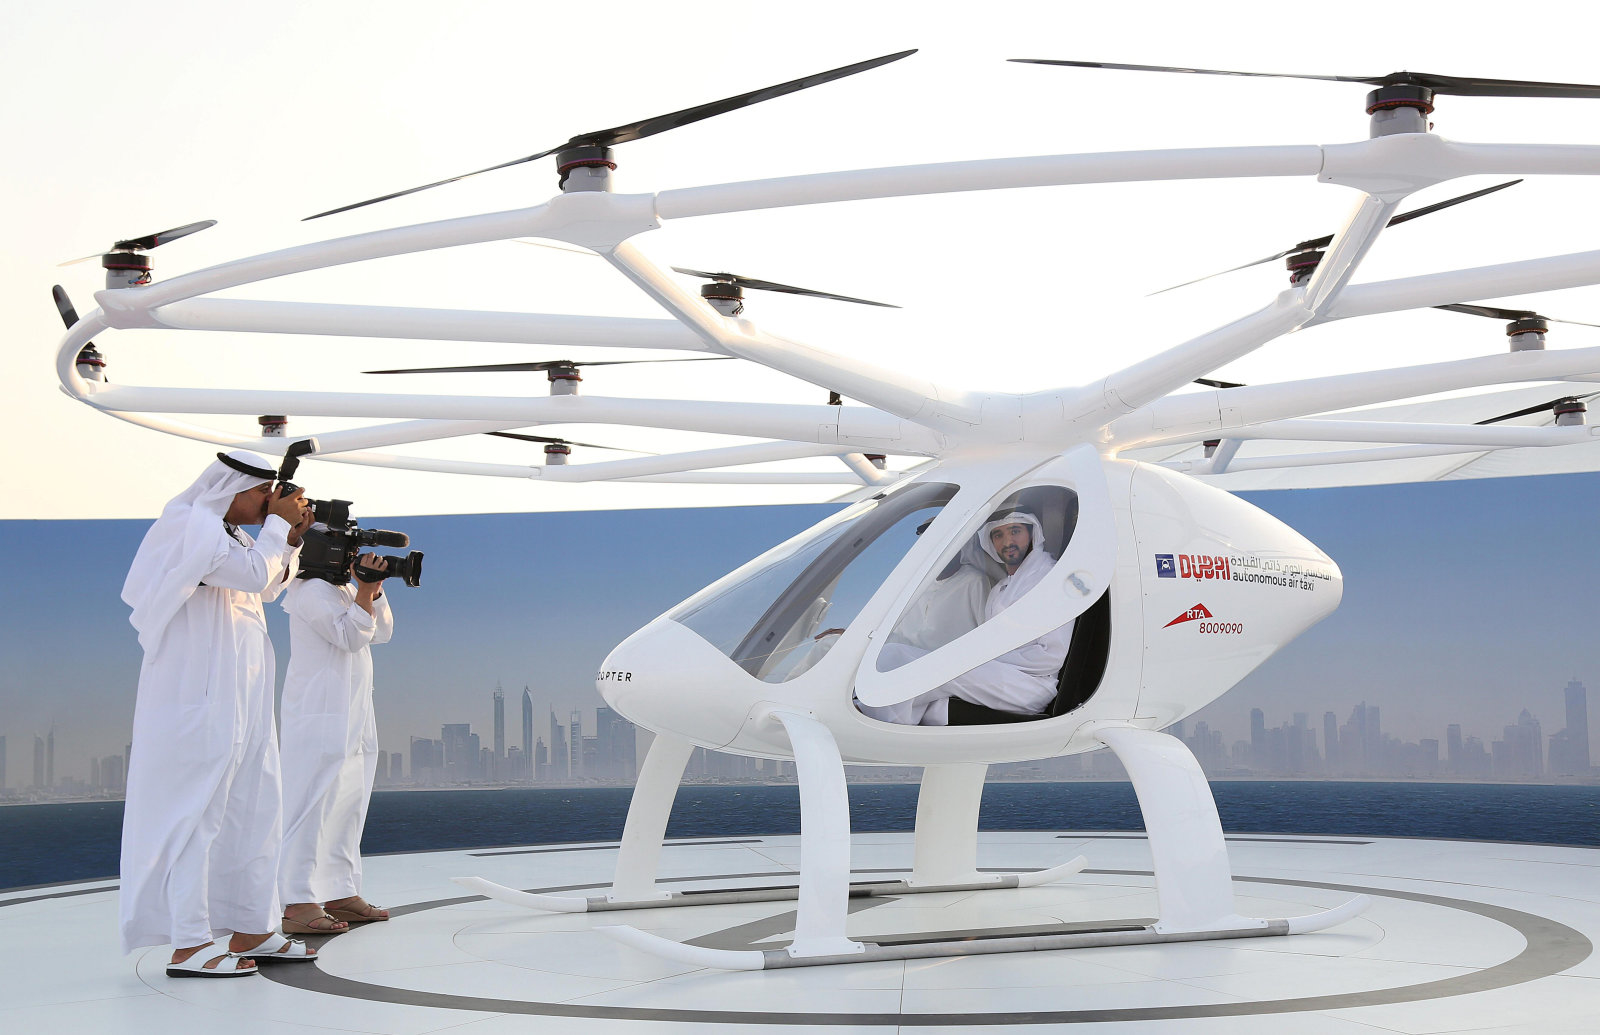 Dubai Crown Prince Sheikh Hamdan bin Mohammed bin Rashid Al Maktoum is seen inside the flying taxi in Dubai